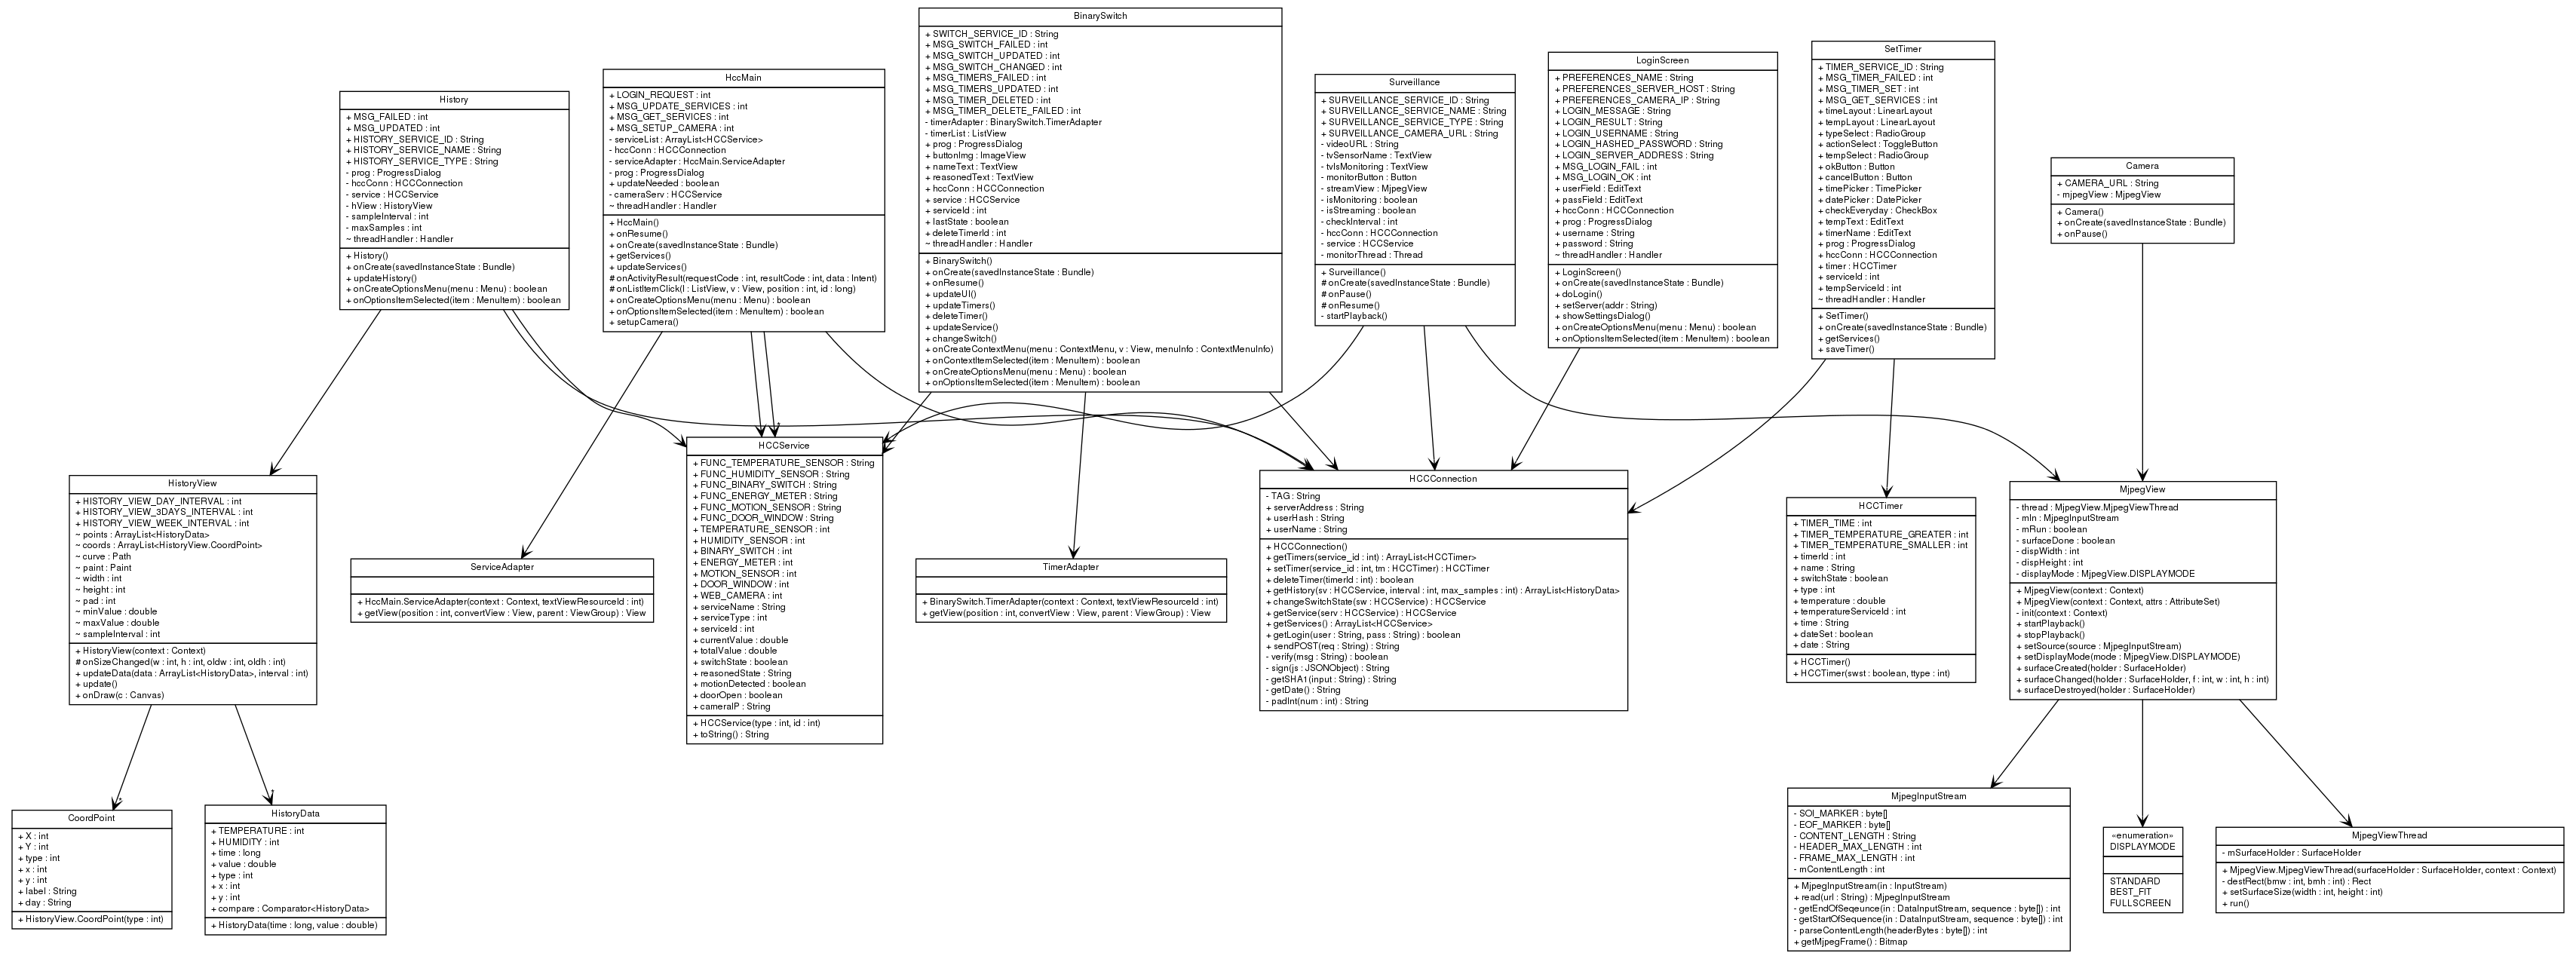 Generating uml diagram from java source code daoyuan li comdryyhccdroid ant class diagram graphviz java reverse engineering ccuart Gallery